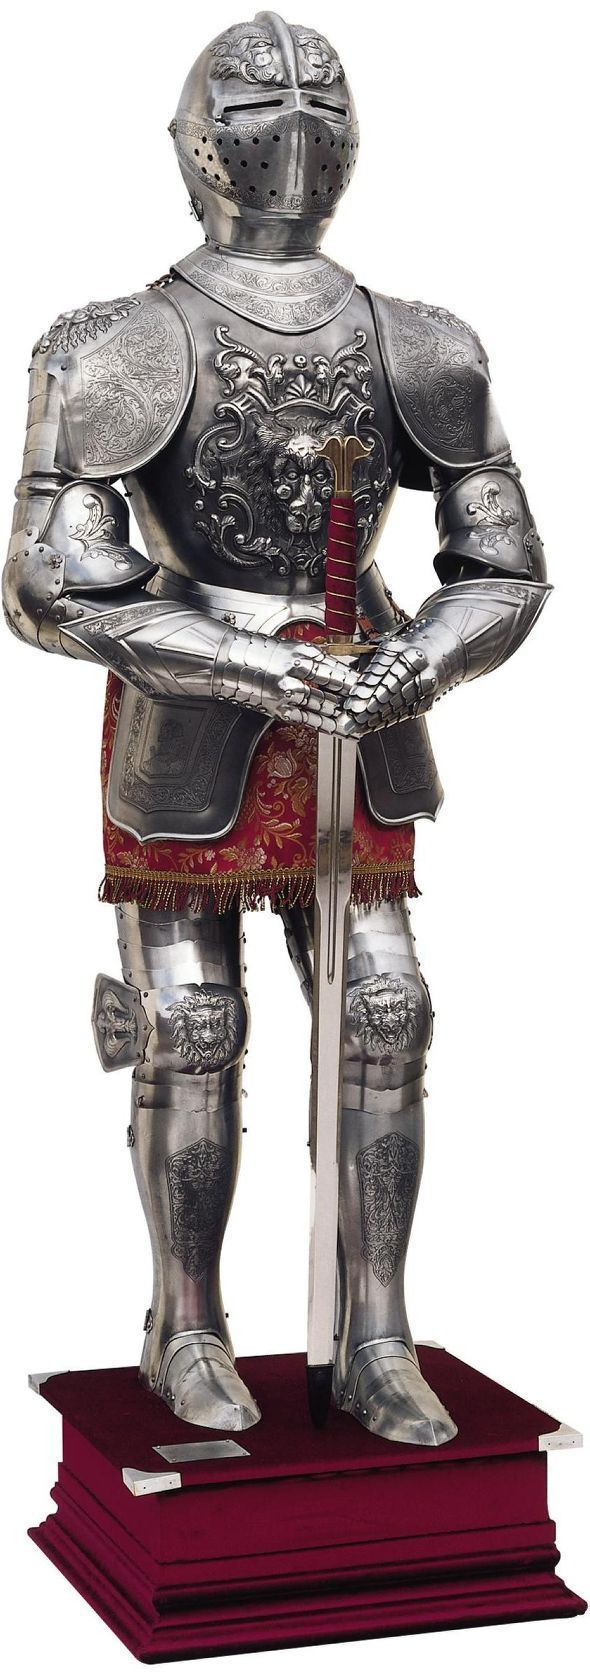 Carlos V Bas Relief Full Size Suit of Armor by Marto of Toledo Spain